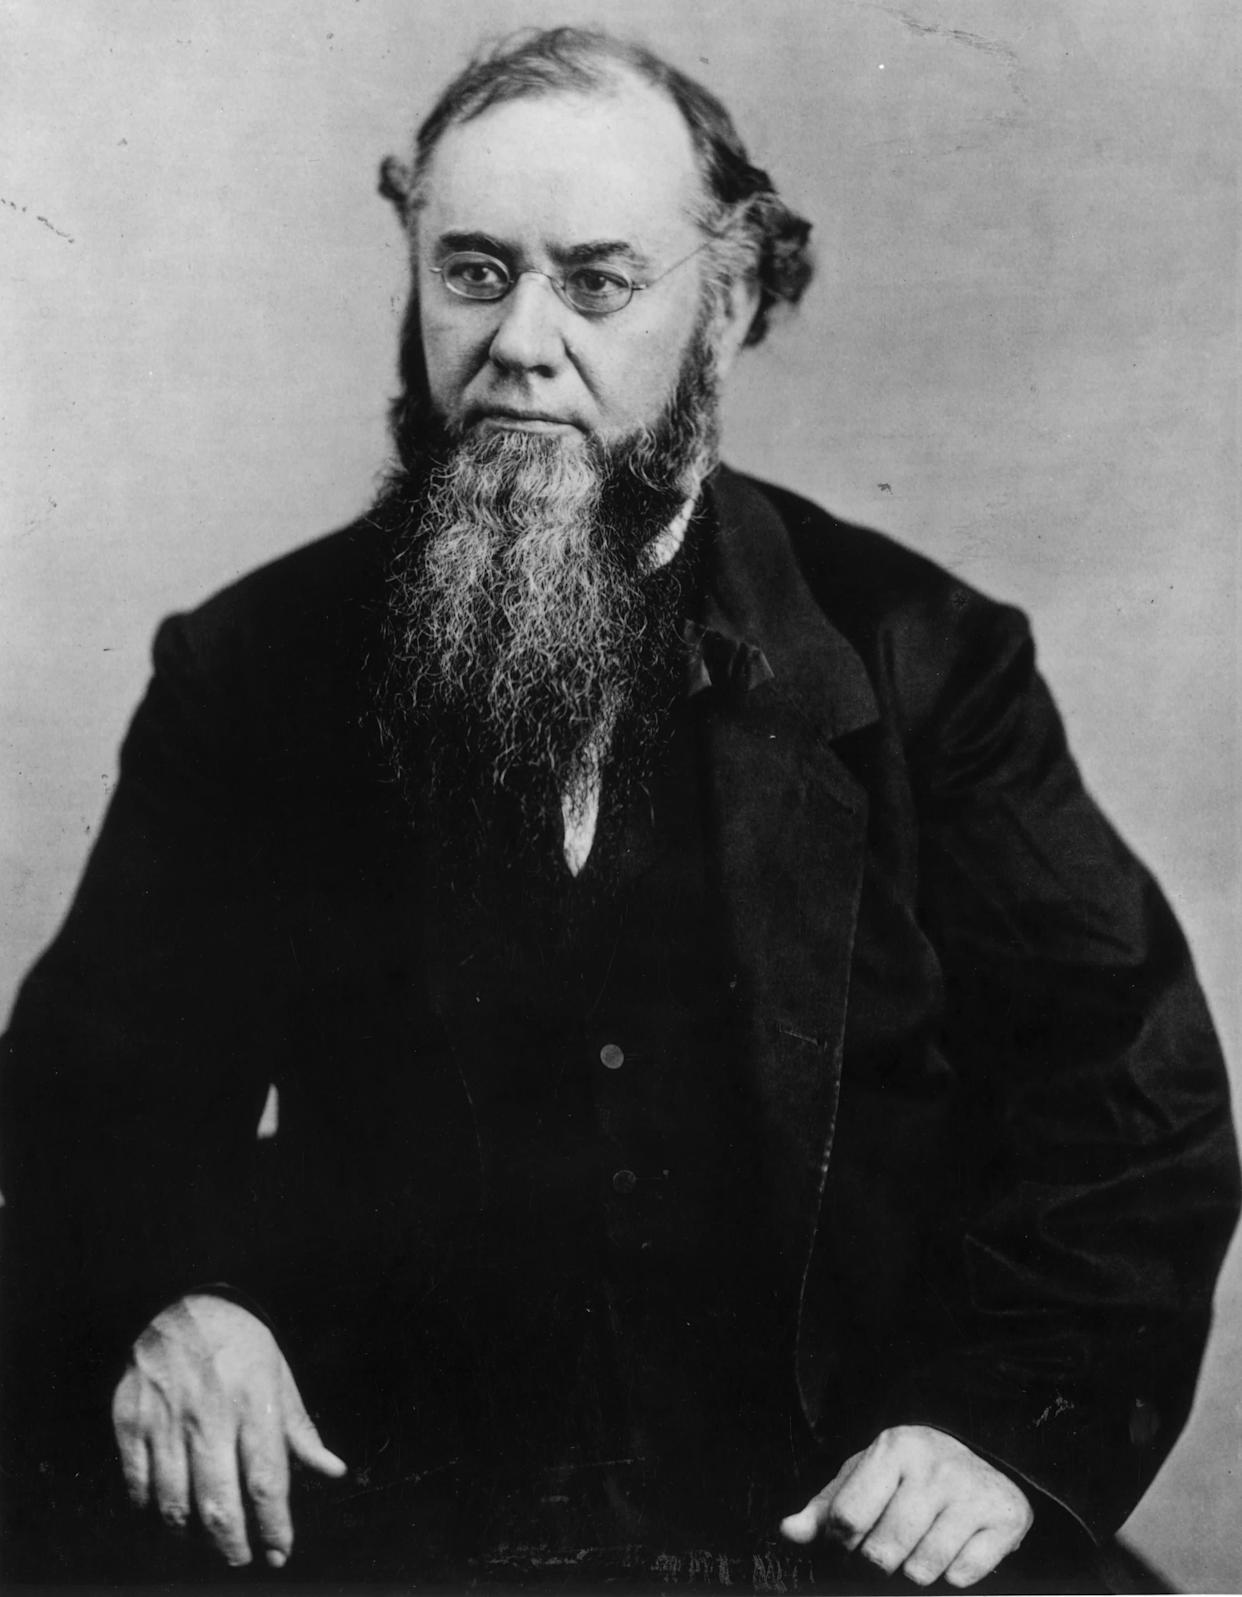 Edwin McMasters Stanton, secretary of war under Lincoln, led the attempt toconvict Lincoln's successor, Andrew Johnson.